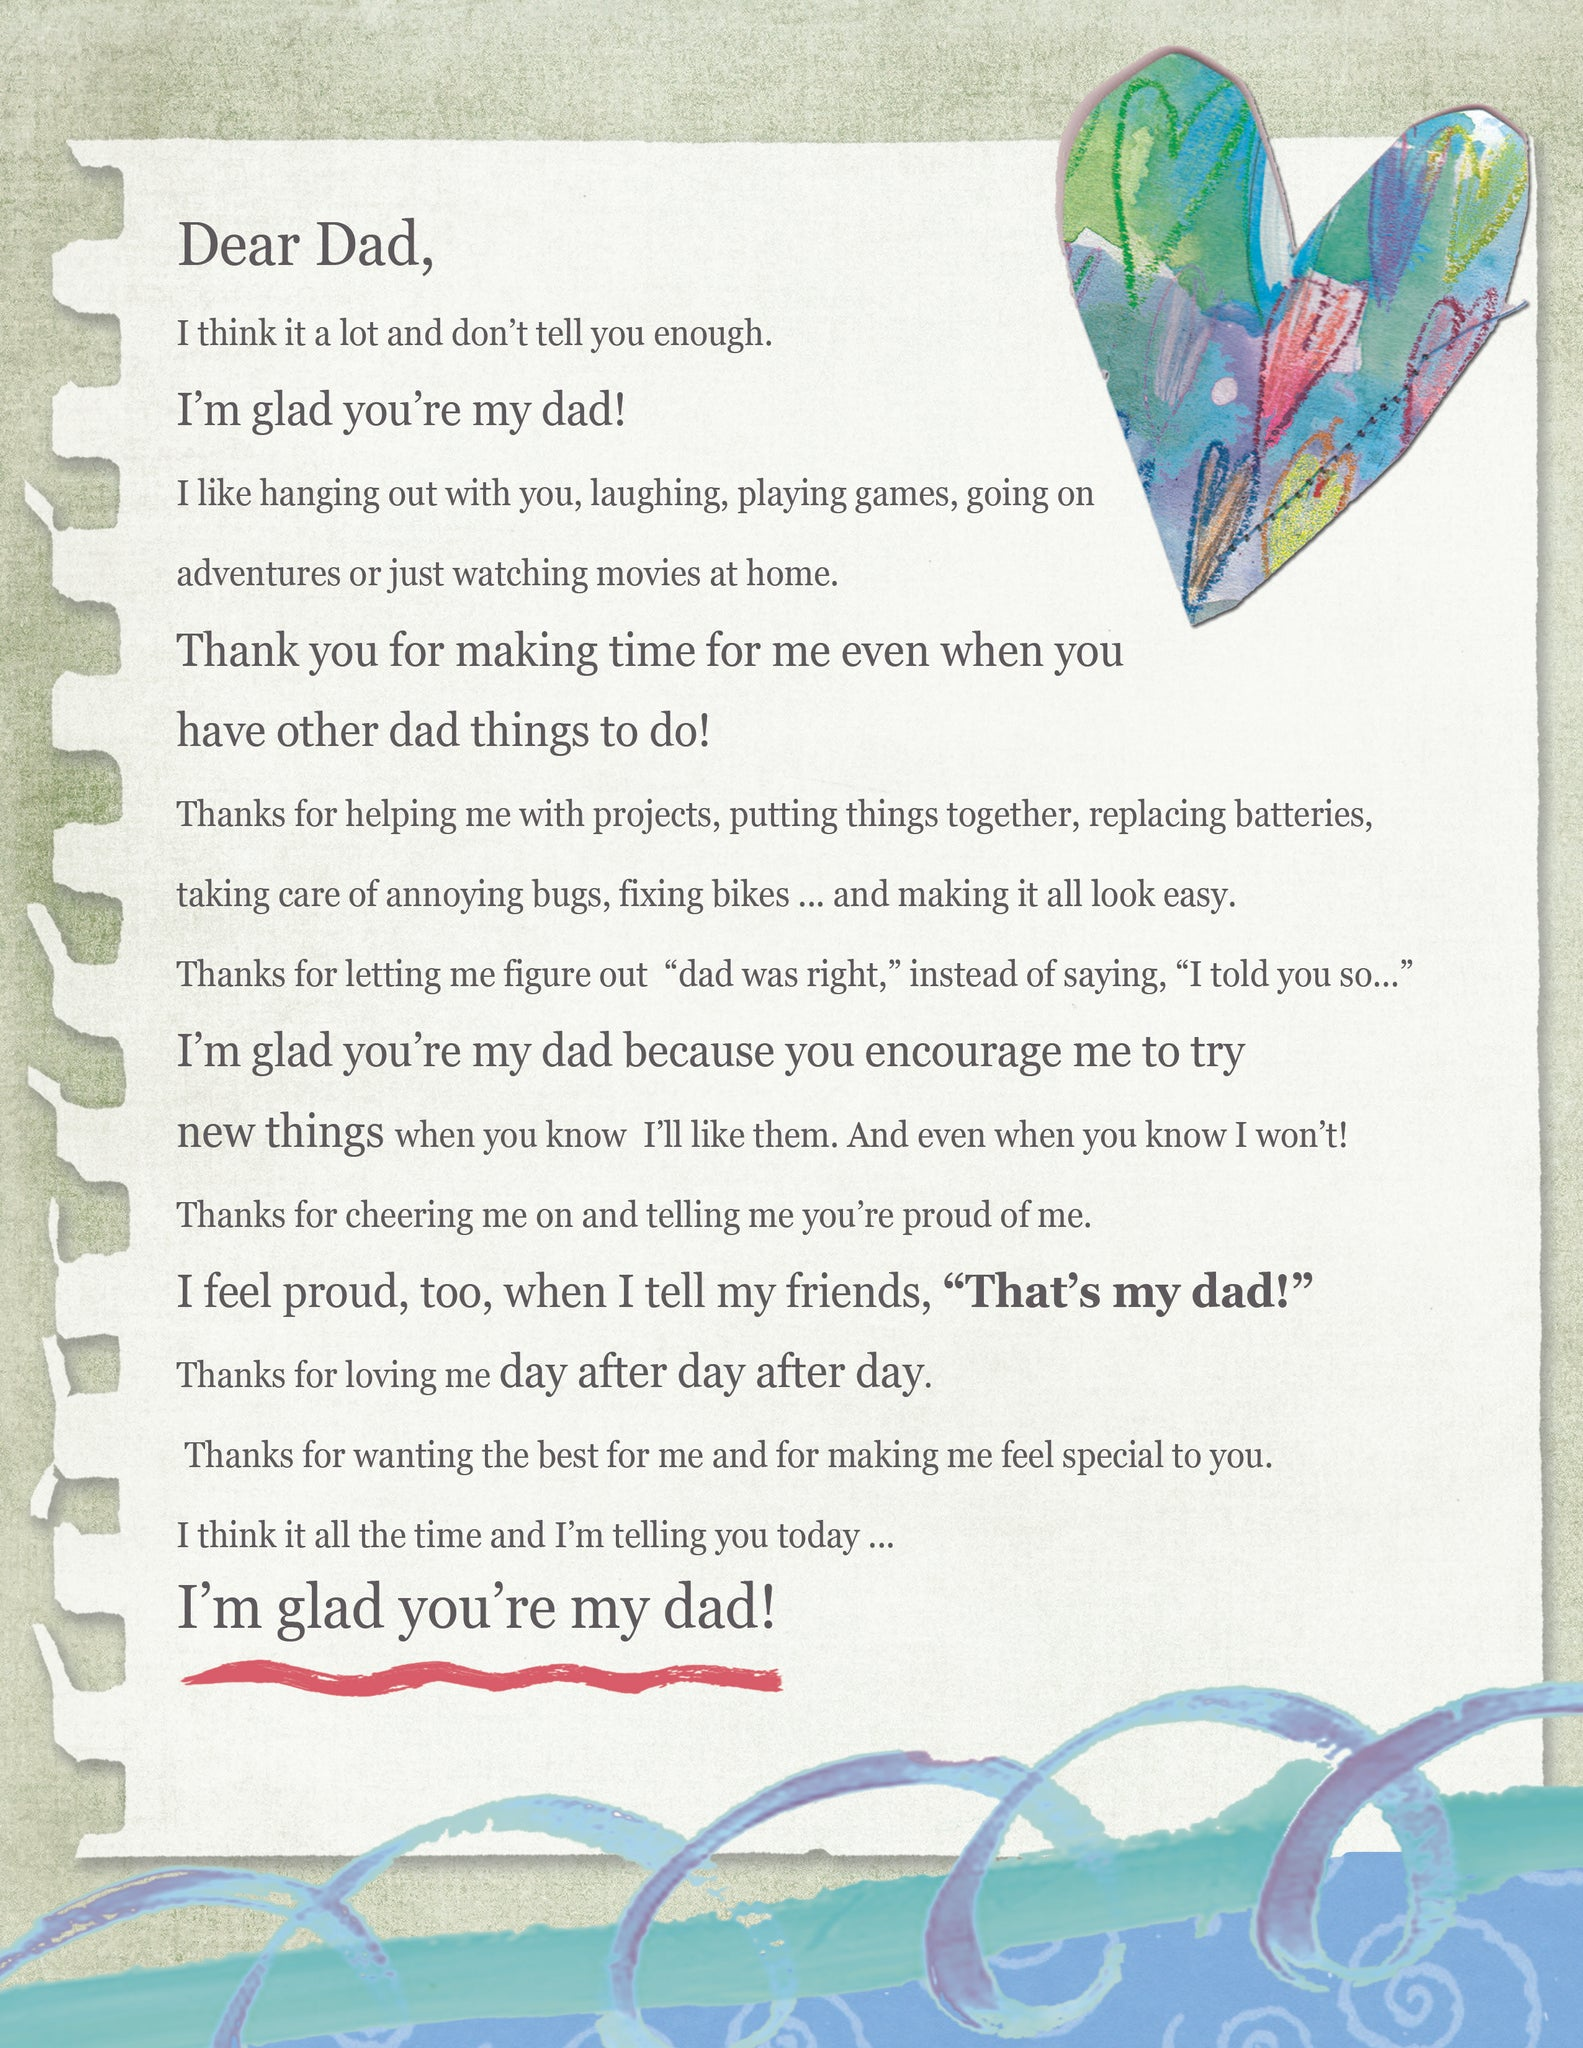 Dear Dad Letter (Digital Download)